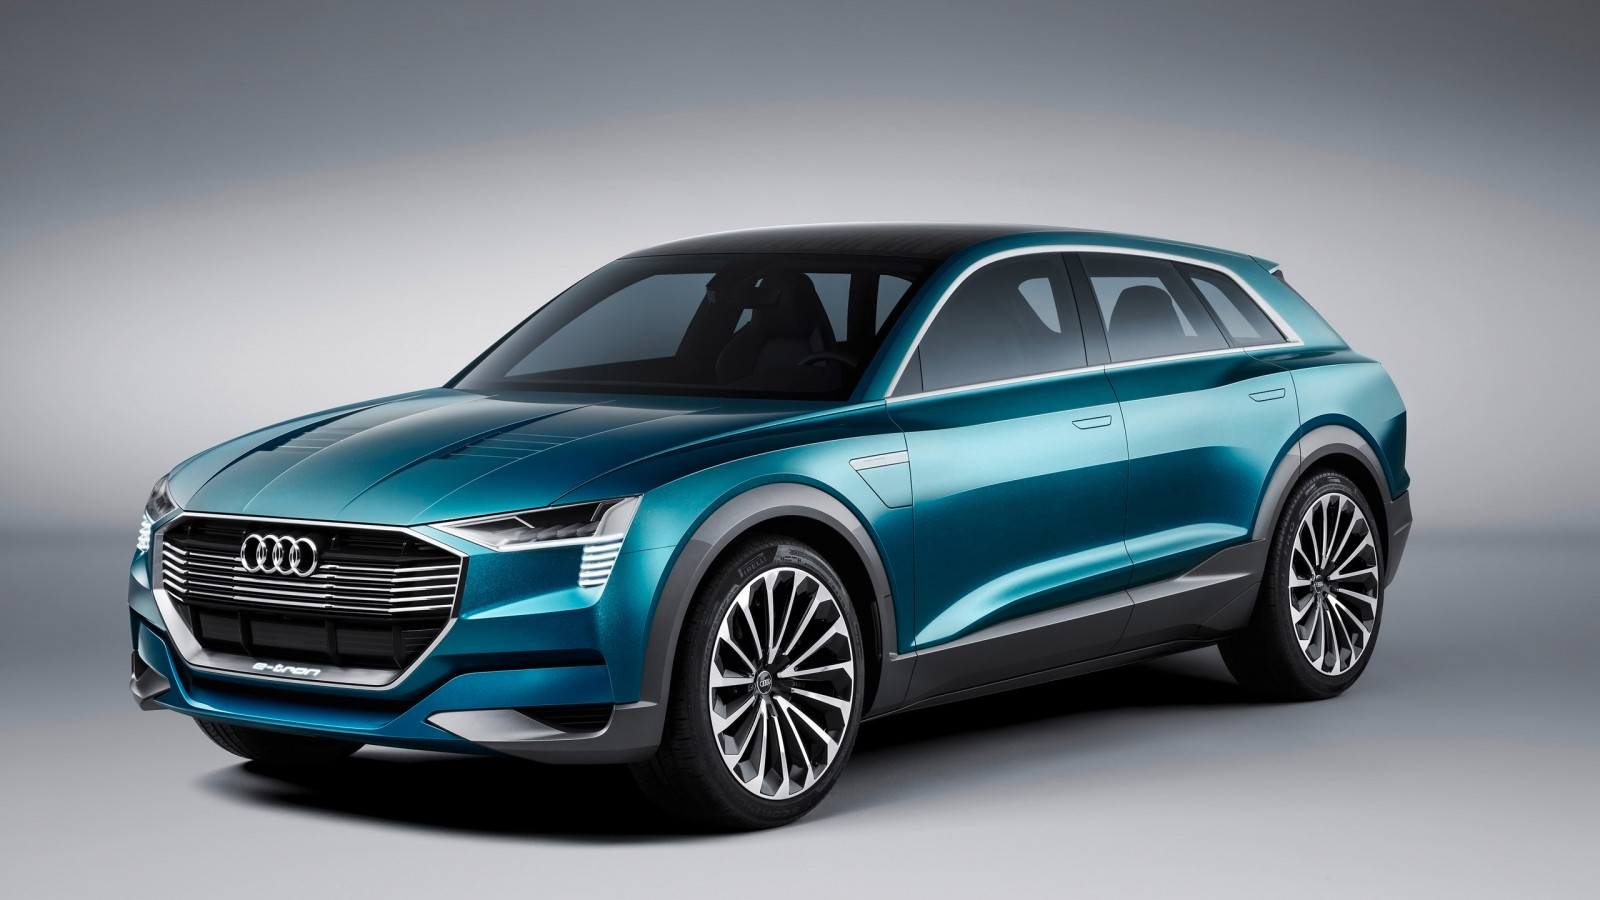 2015 Audi E Tron Quattro Concept 5 Wallpaper  HD Car Wallpapers